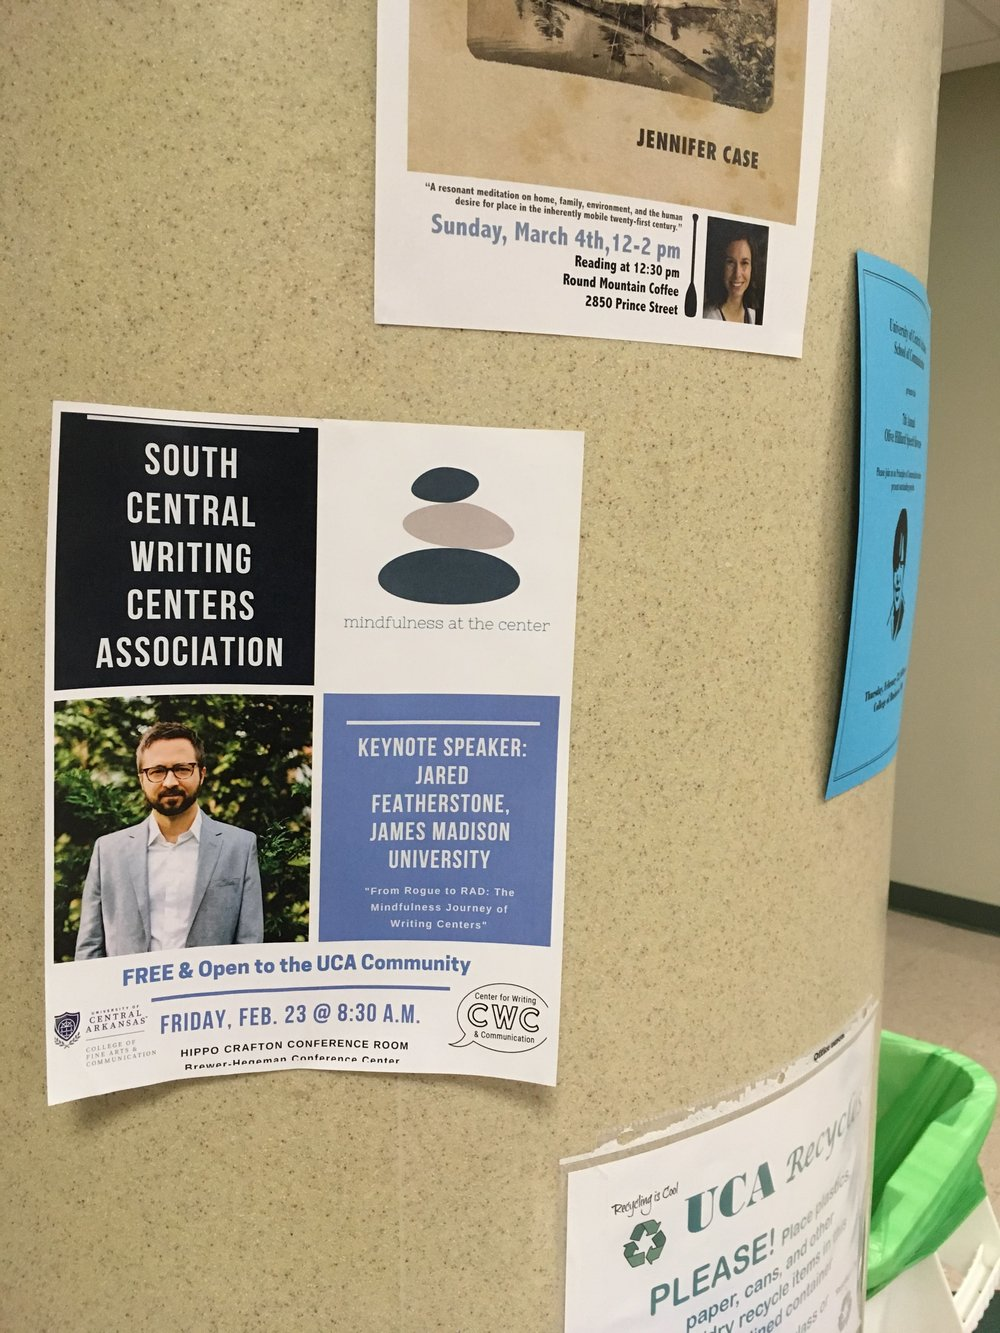 """Keynote Speaker:  2018 South Central Writing Centers Association Conference at the University of Central Arkansas. Talk title: """"From Rogue to RAD: The MIndfulness Journey for Writing Centers."""""""